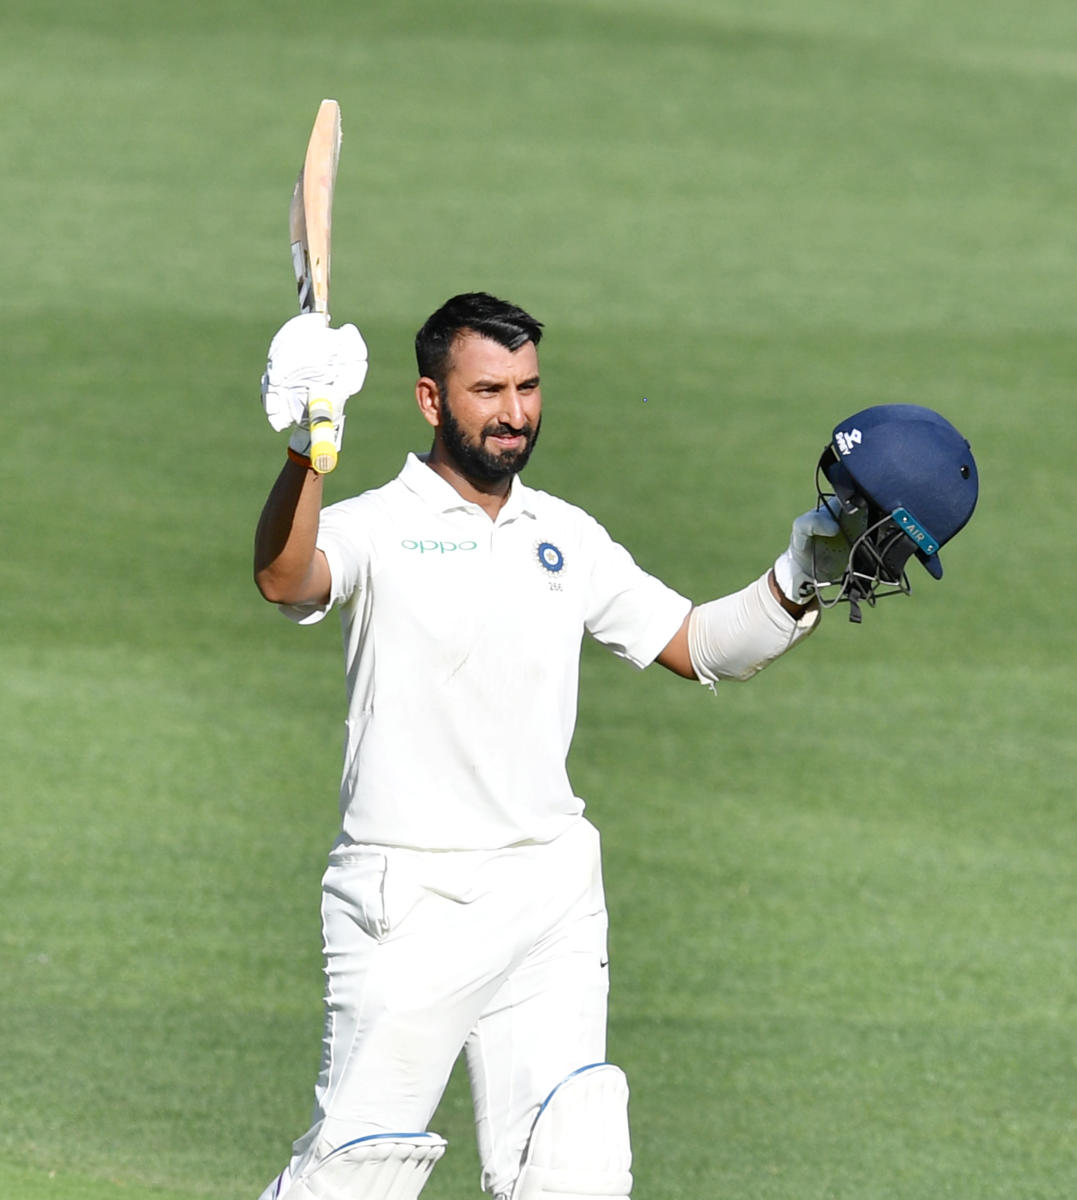 India's Cheteshwar Pujara celebrates after reaching his century against Australia in the first Test in Adelaide on Thursday. Reuters